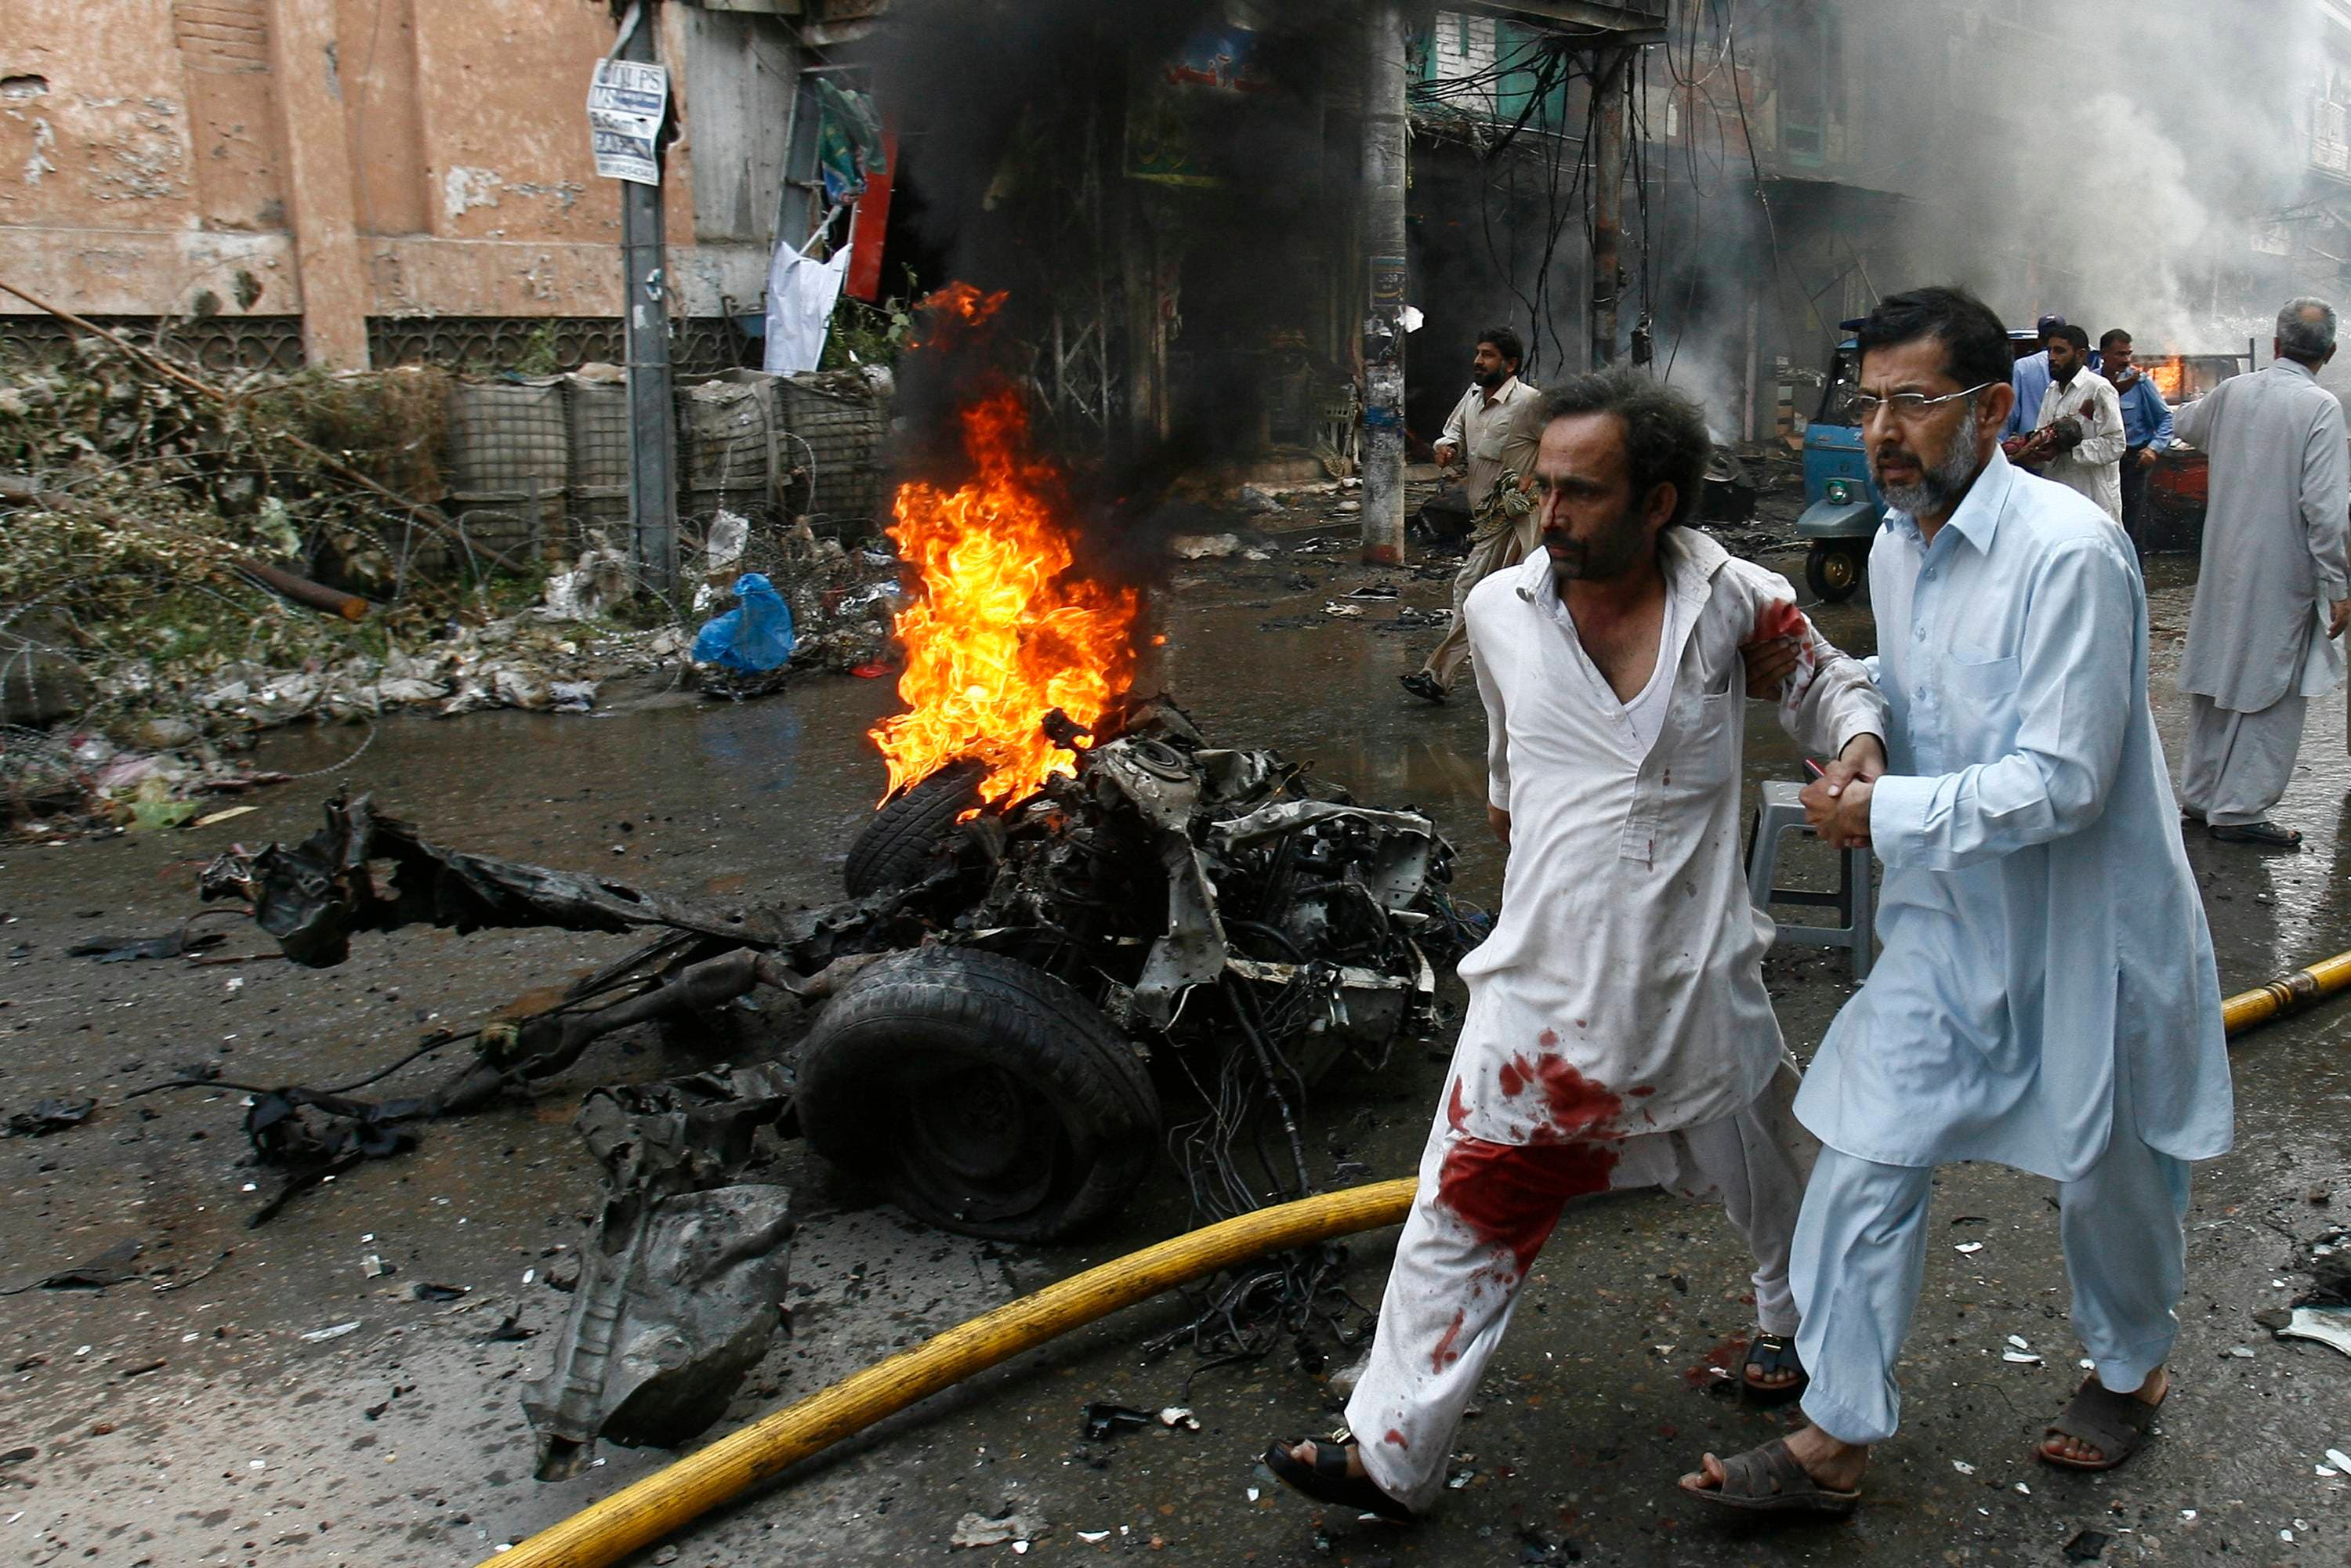 A man helps an injured man walk away from the site of a bomb attack in Peshawar, Pakistan on Sept. 29, 2013. (Reuters)